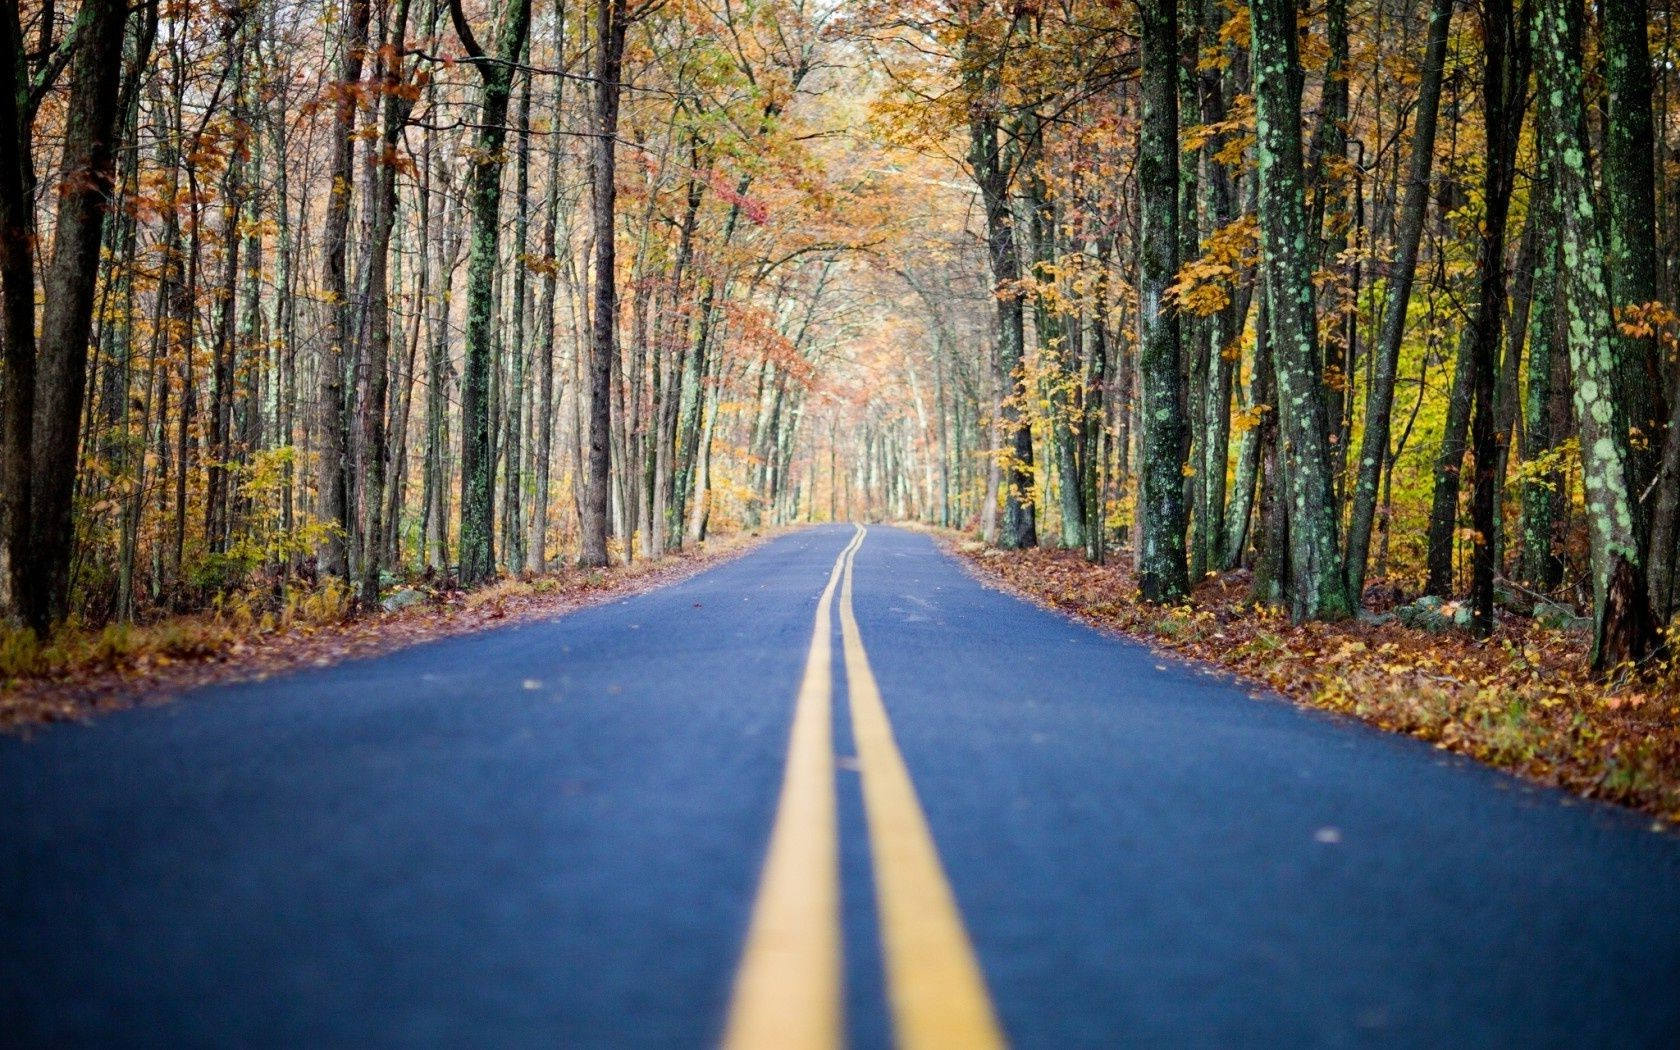 autumn road nature forest